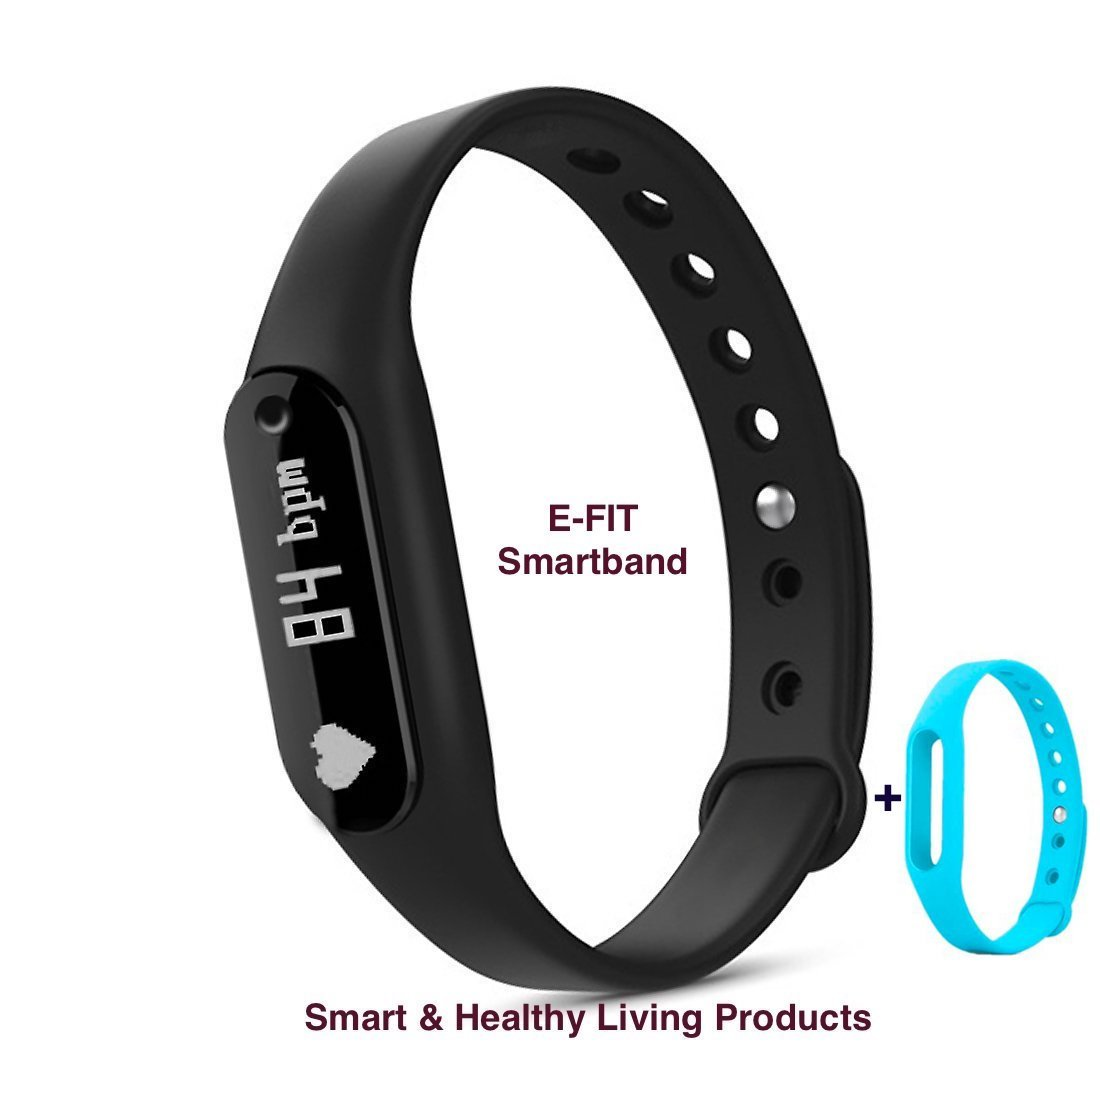 Amazon.com : E-FIT New Smart band, Heart Rate Monitor, Step Tracker, Pedometer, Smart Bracelet, Fitness Tracker, Bluetooth Health Smartband for iOS & Android phones + One Free Color Band (Black-Blue)